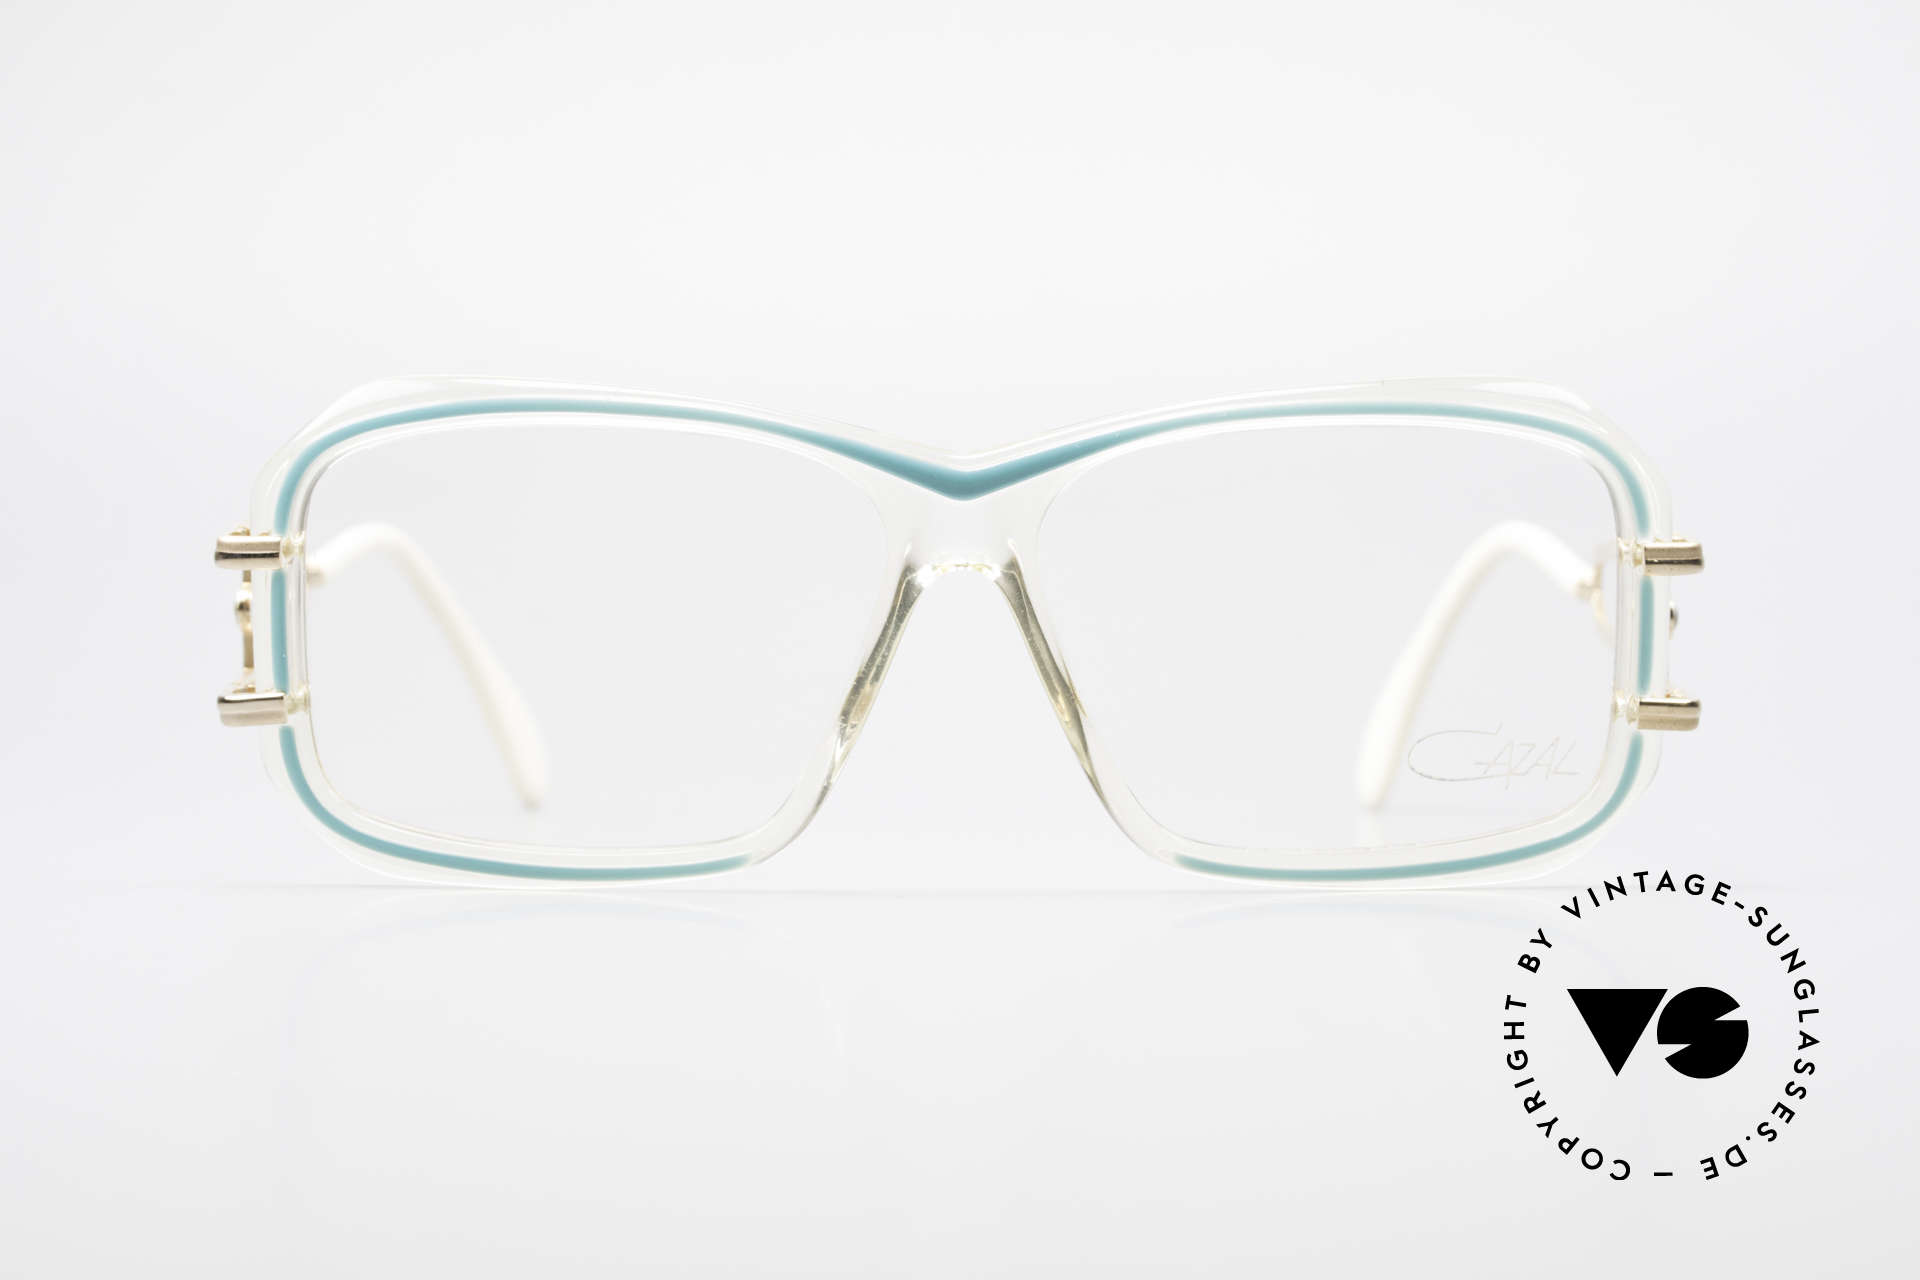 Cazal 173 Hip Hop Cazal 80's Glasses, clear synthetic frame with striking metal temples, Made for Women